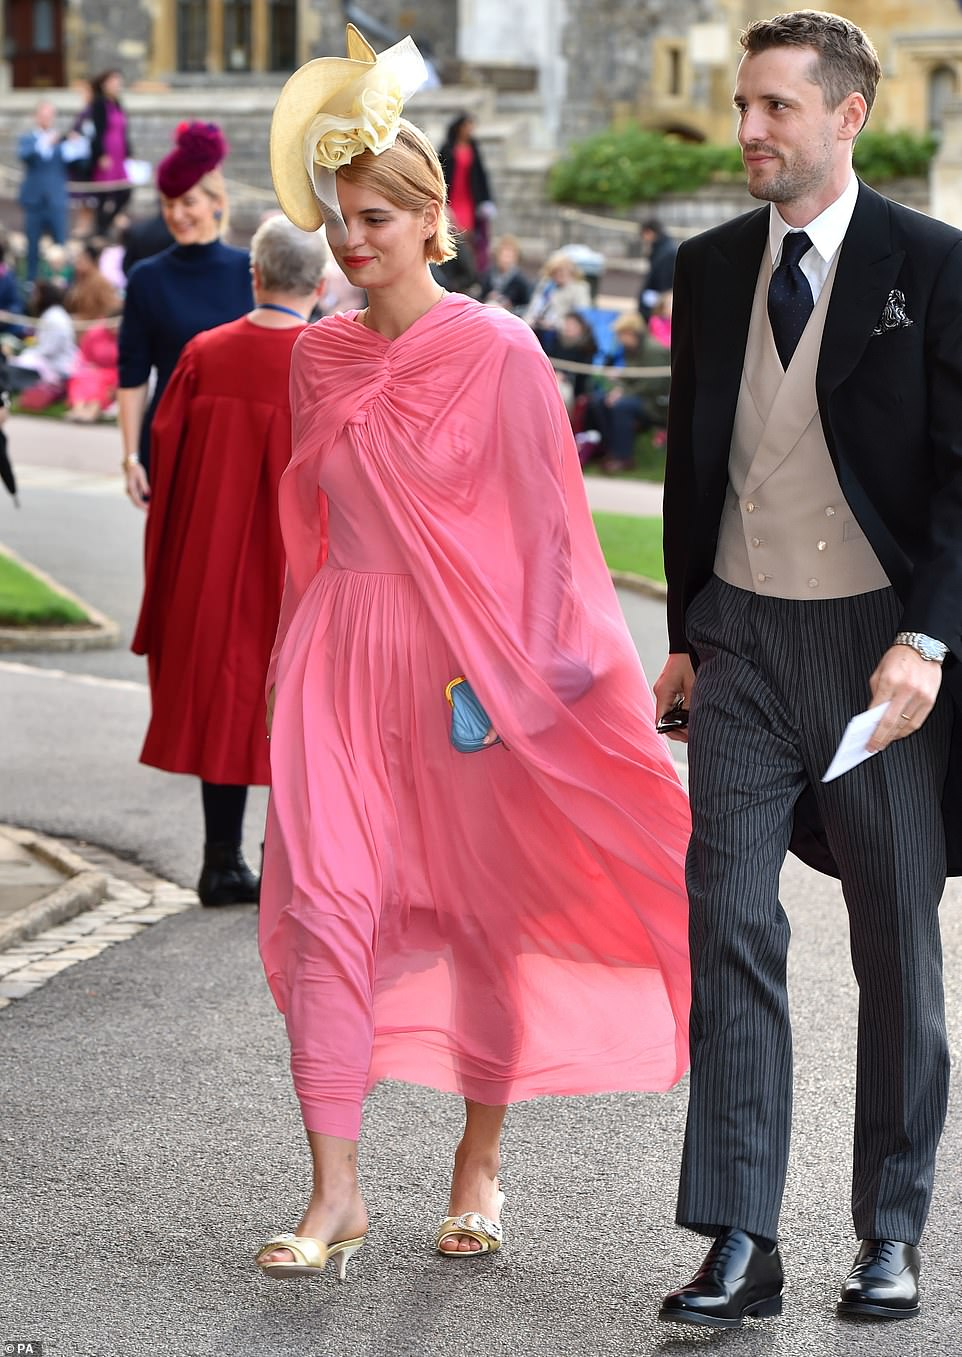 4980432-6268613-Pixie_Geldof_and_George_Barnett_arrive_at_the_grounds_of_Windsor-m-11_1539333999430